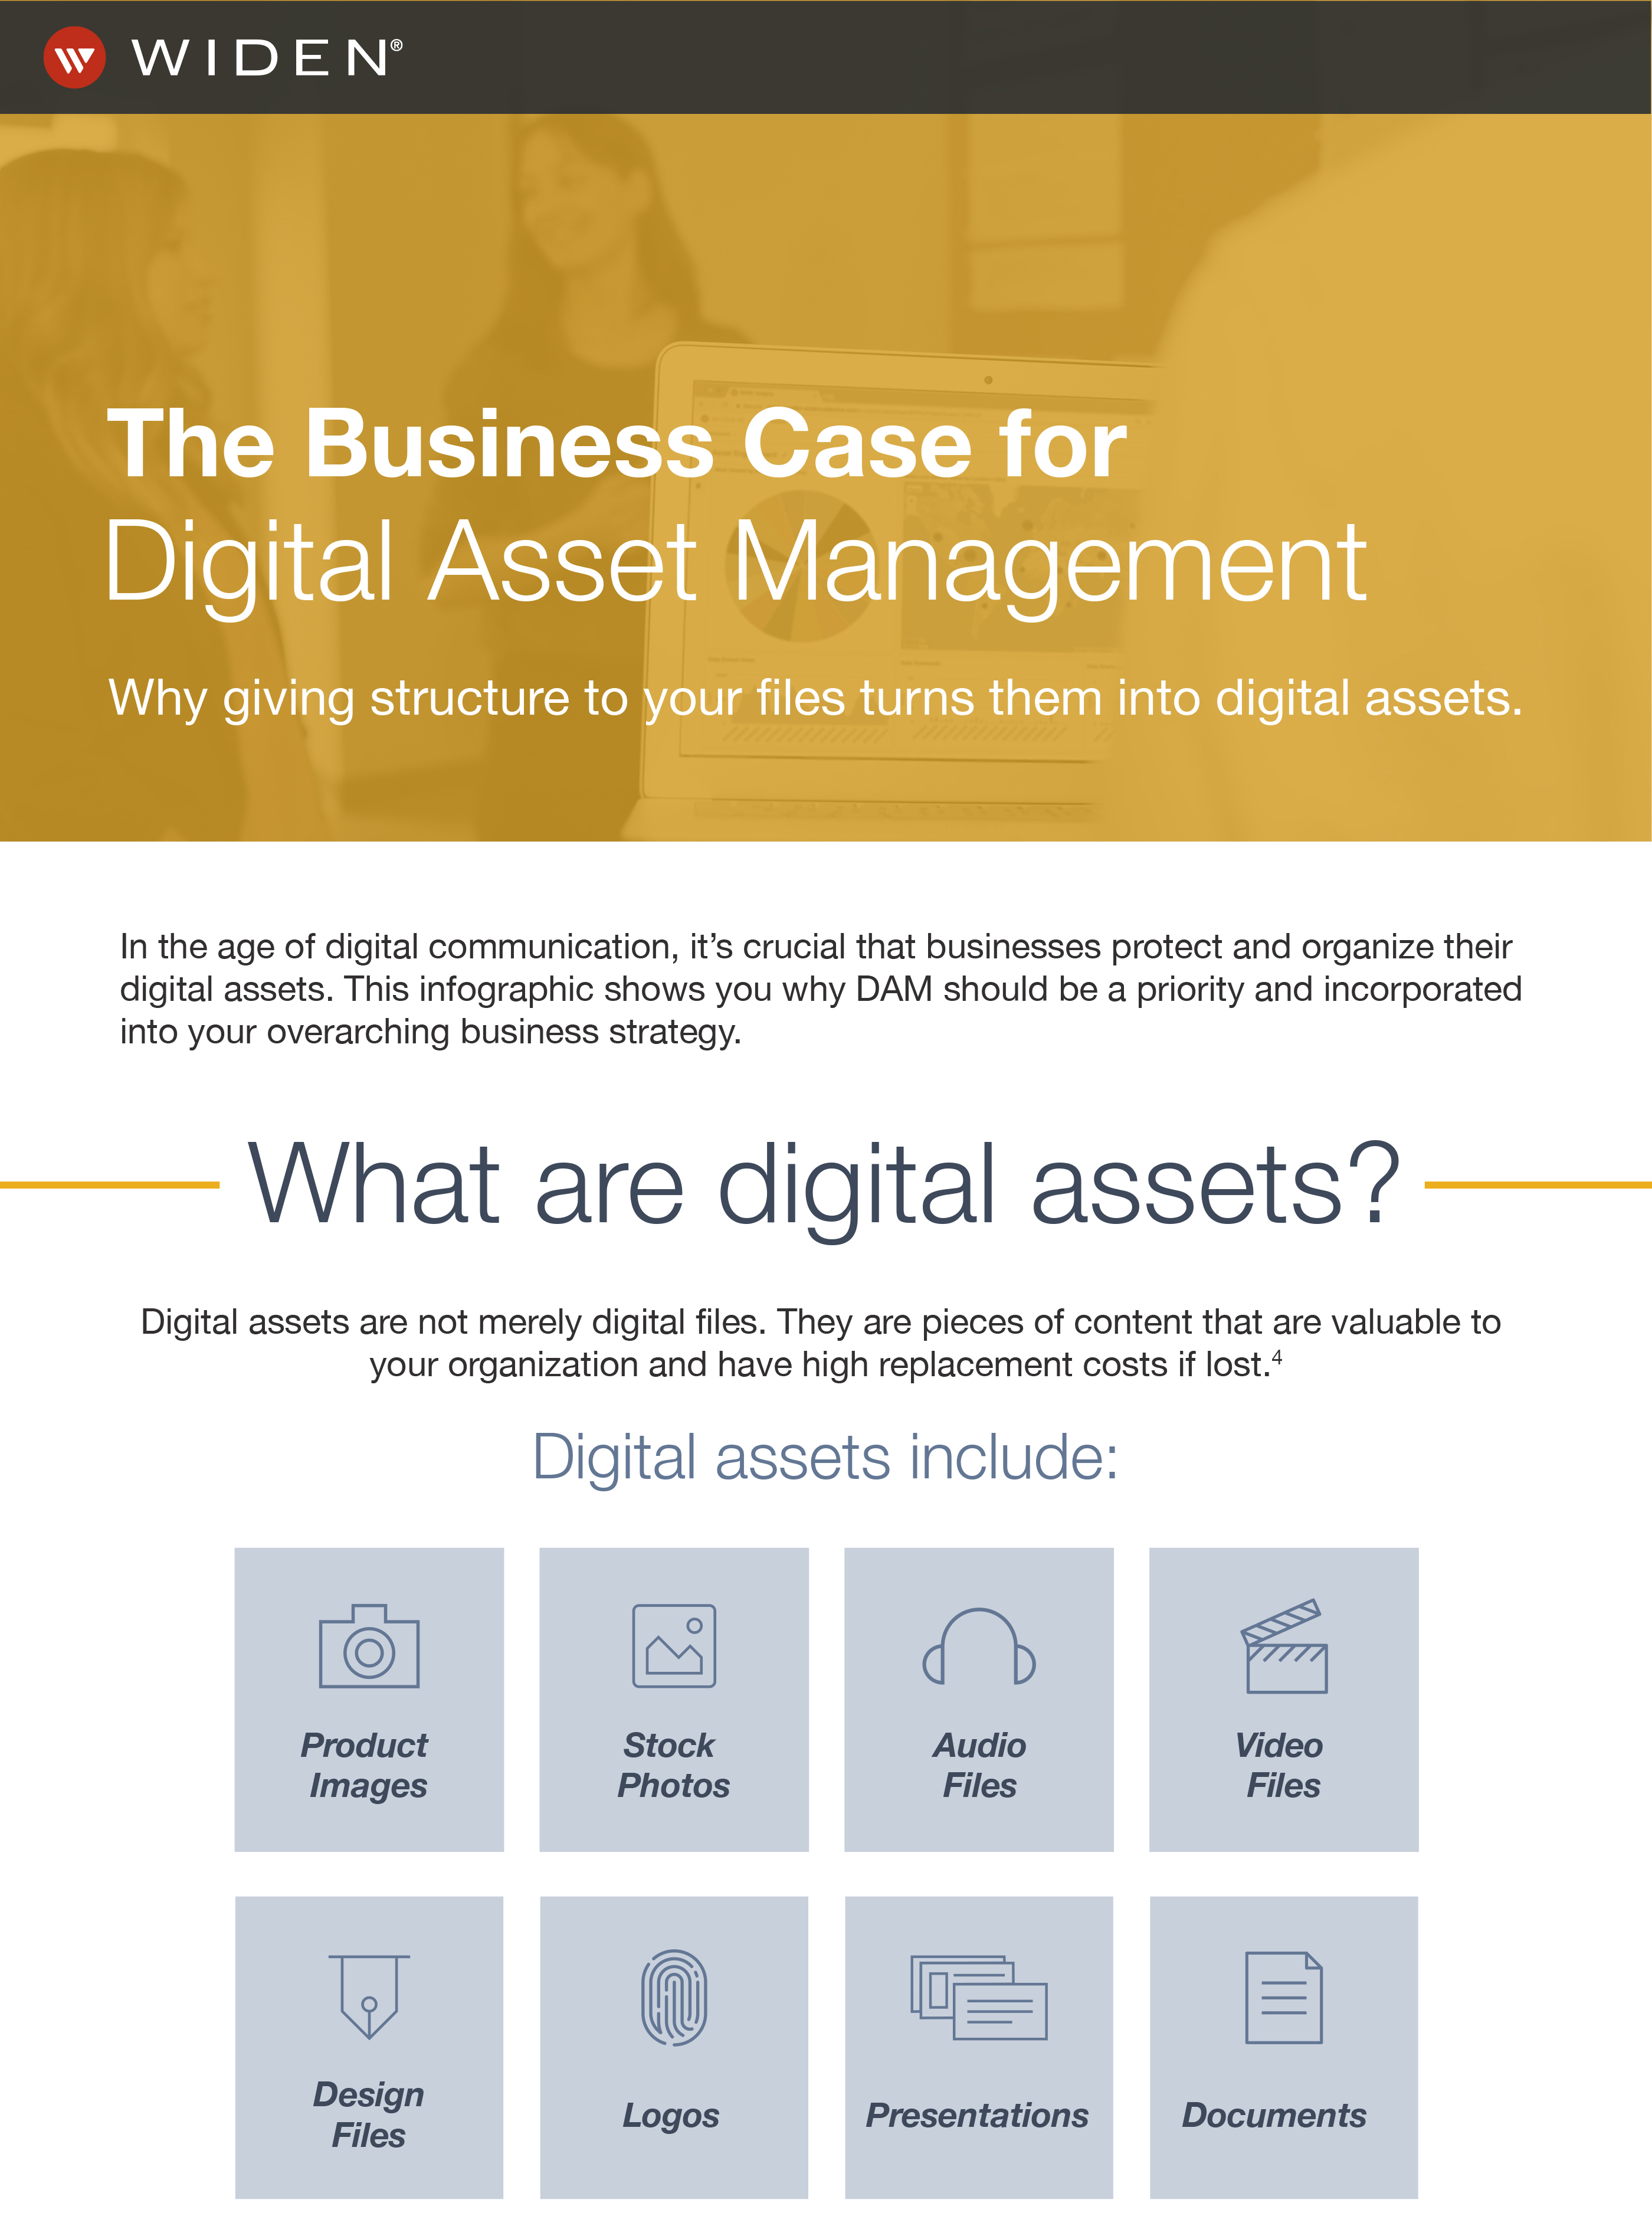 The-Business-Case-for-DAM-Infographic-1